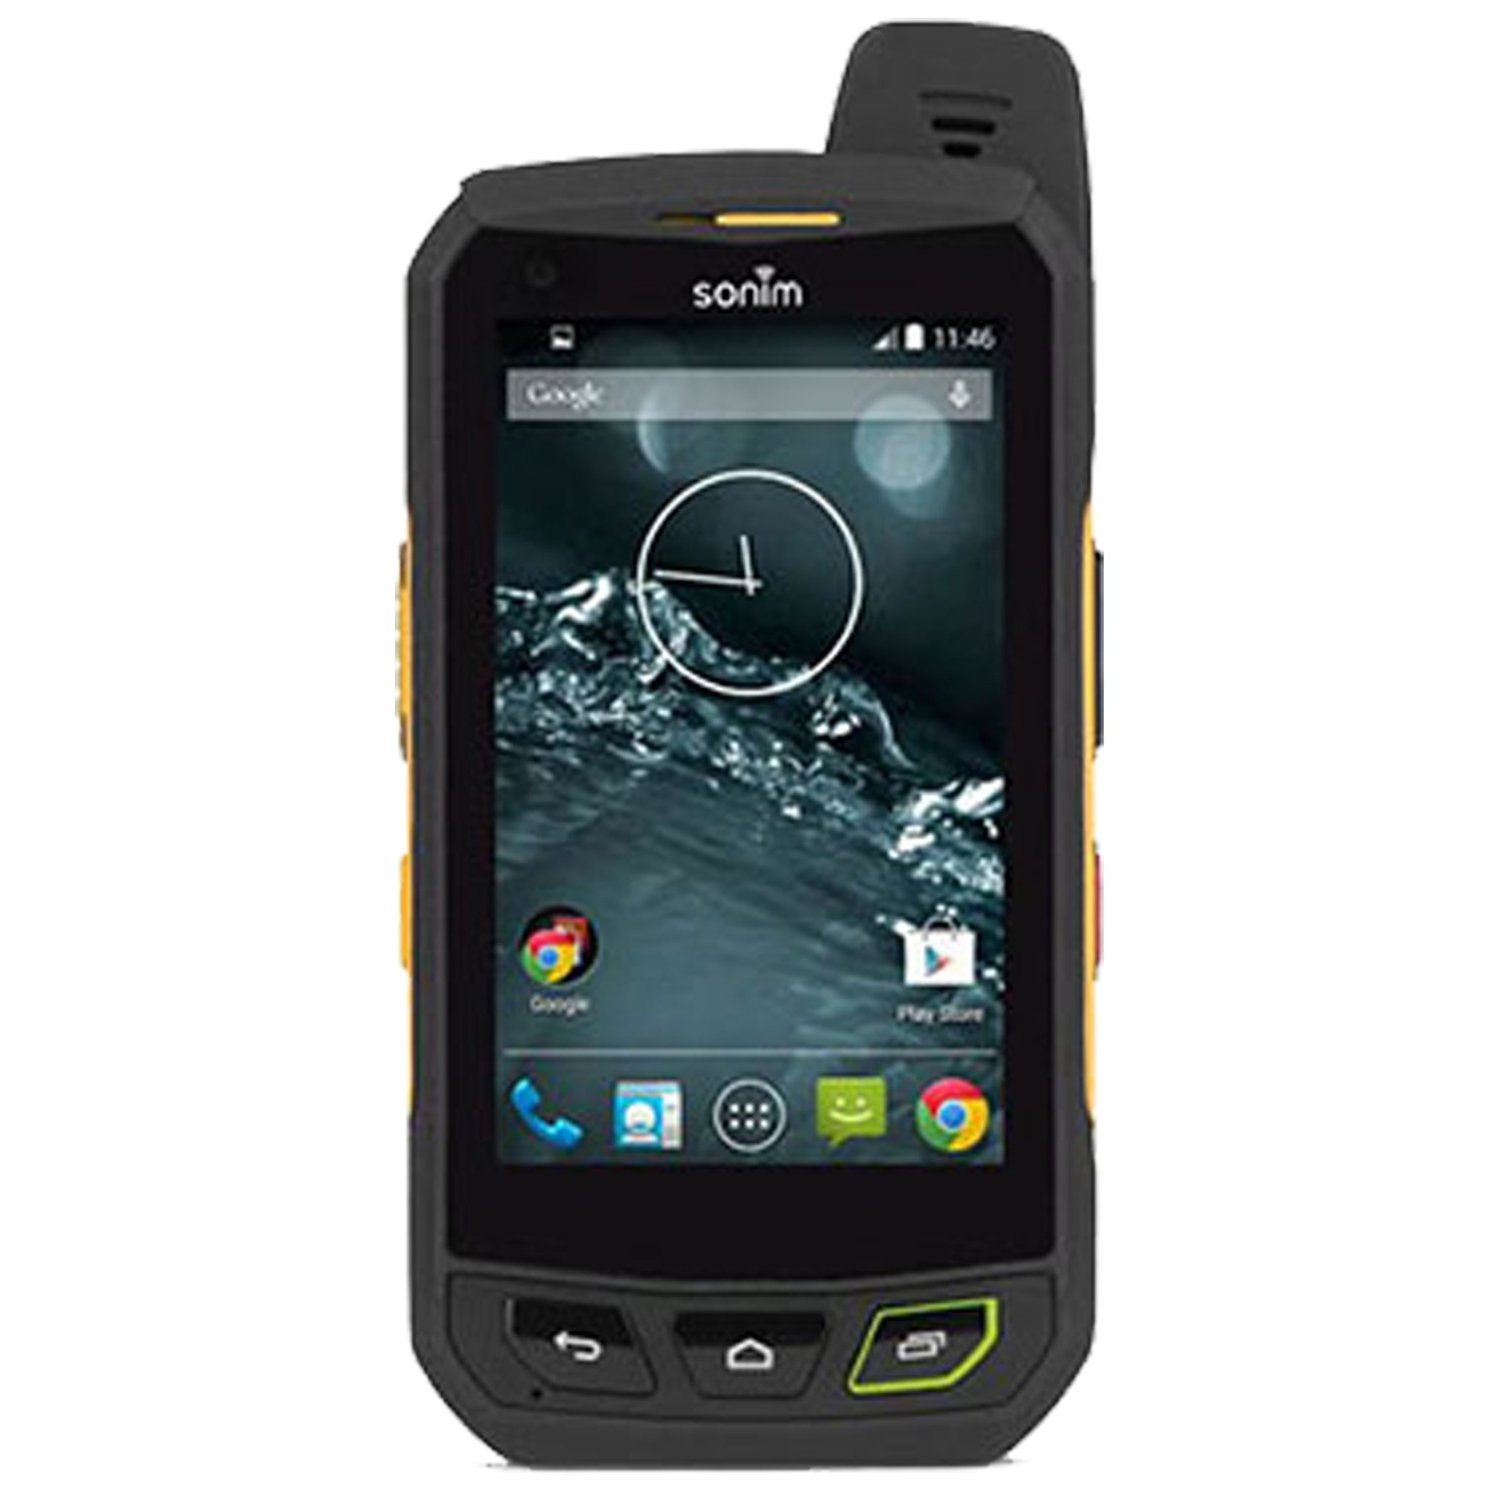 Image Result For Smartphones Cell Phones Compare Our Best Cell